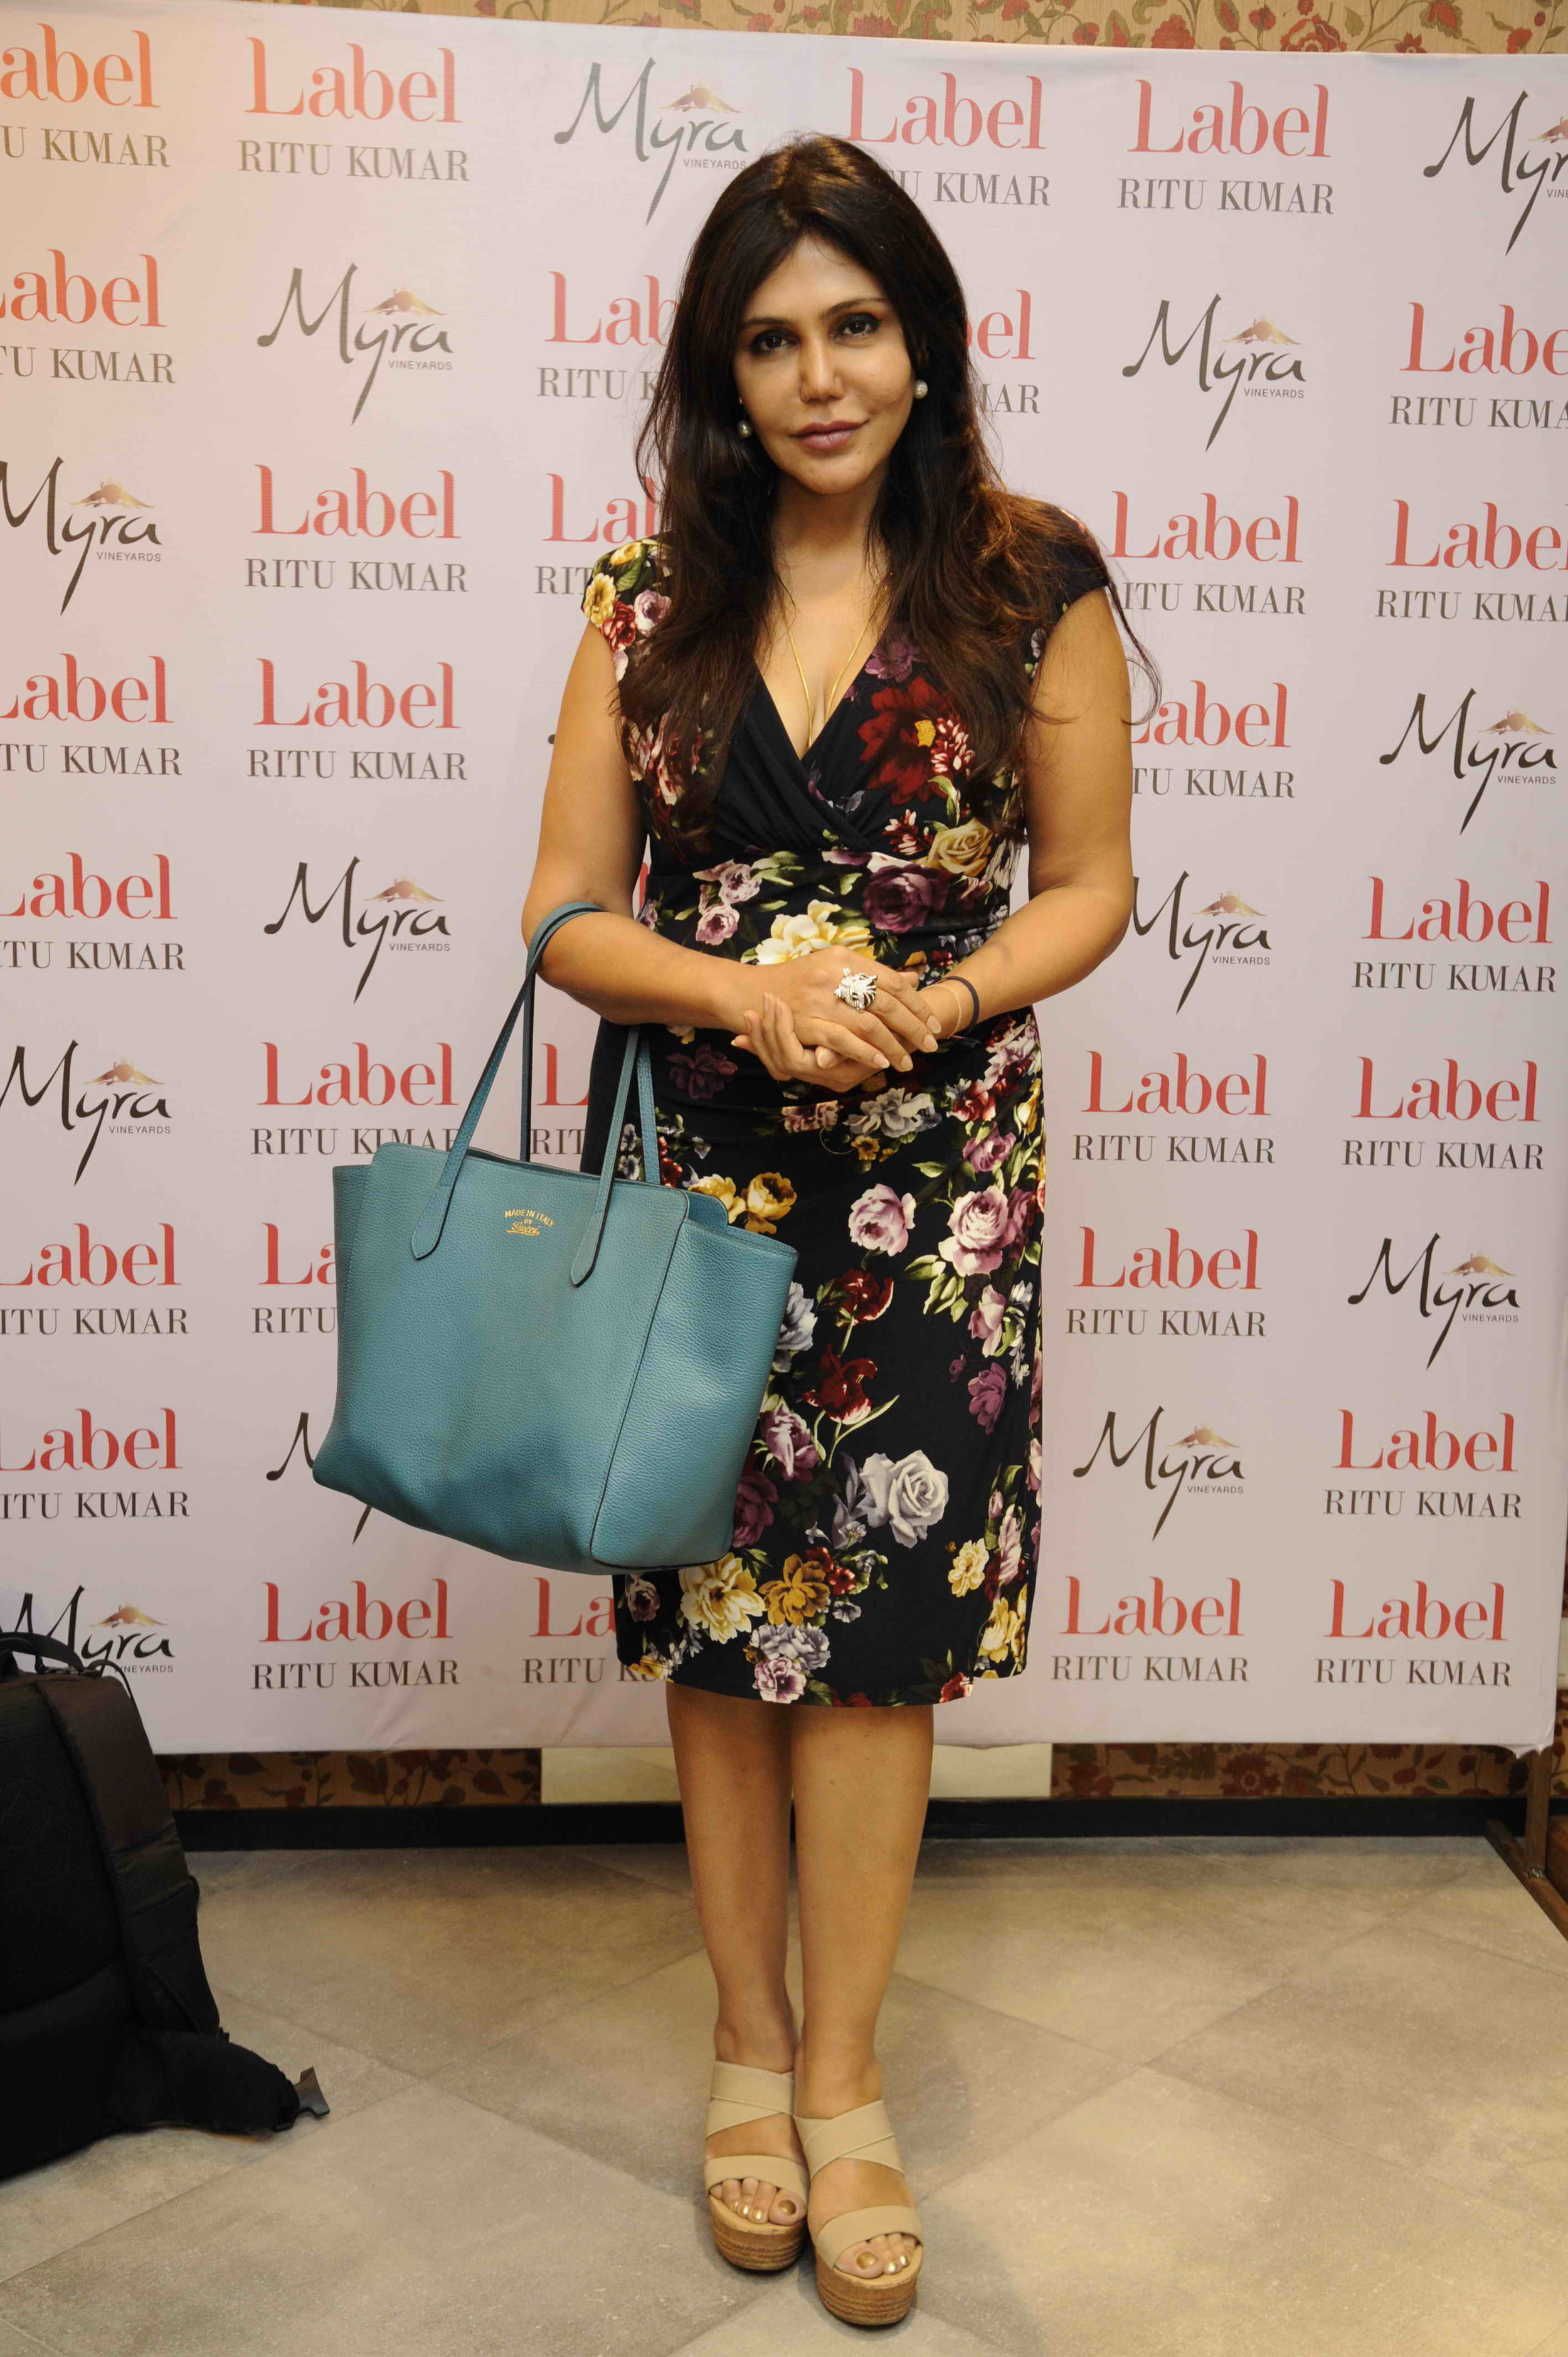 label-ritu-kumar-palladium-launch-16.jpg